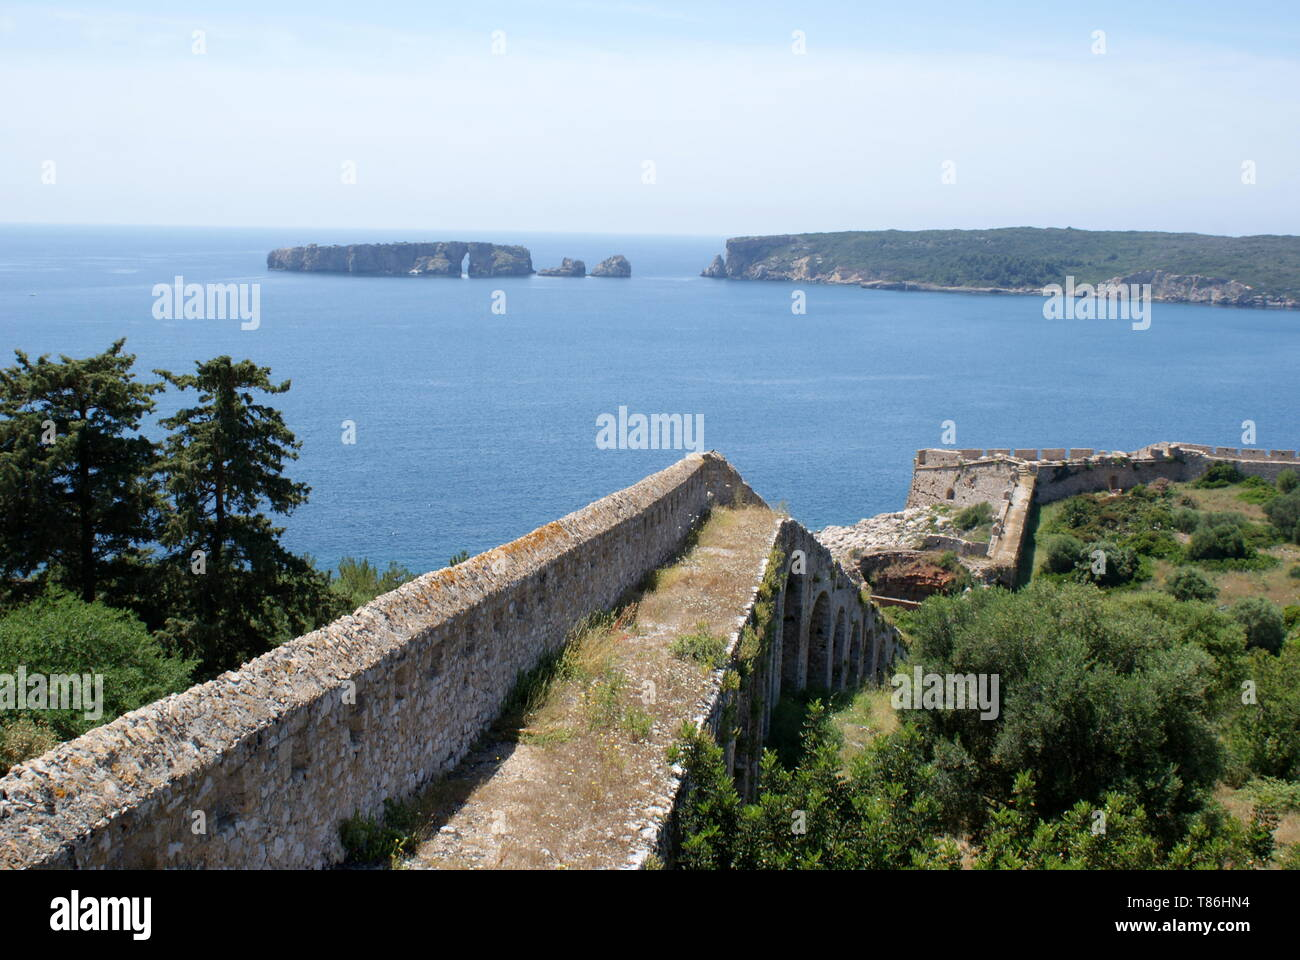 The fortified walls of Niokastro castle and Navarino Bay, Pylos, Peloponnese, Greece - Stock Image